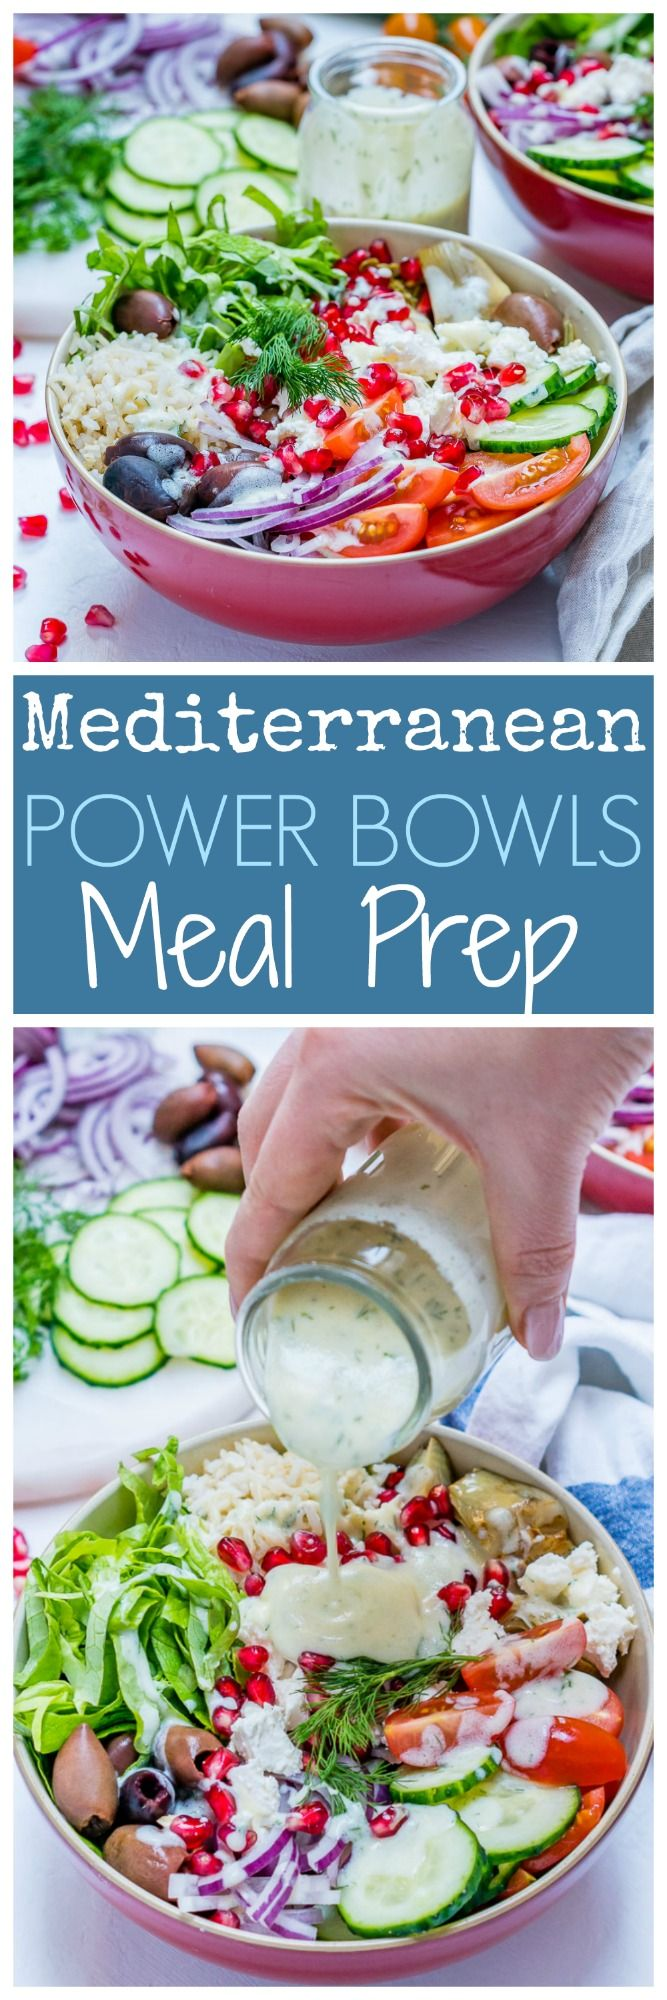 These Mediterranean Green Power Bowls are a Gorgeous Meal Prep idea! - Clean Food Crush